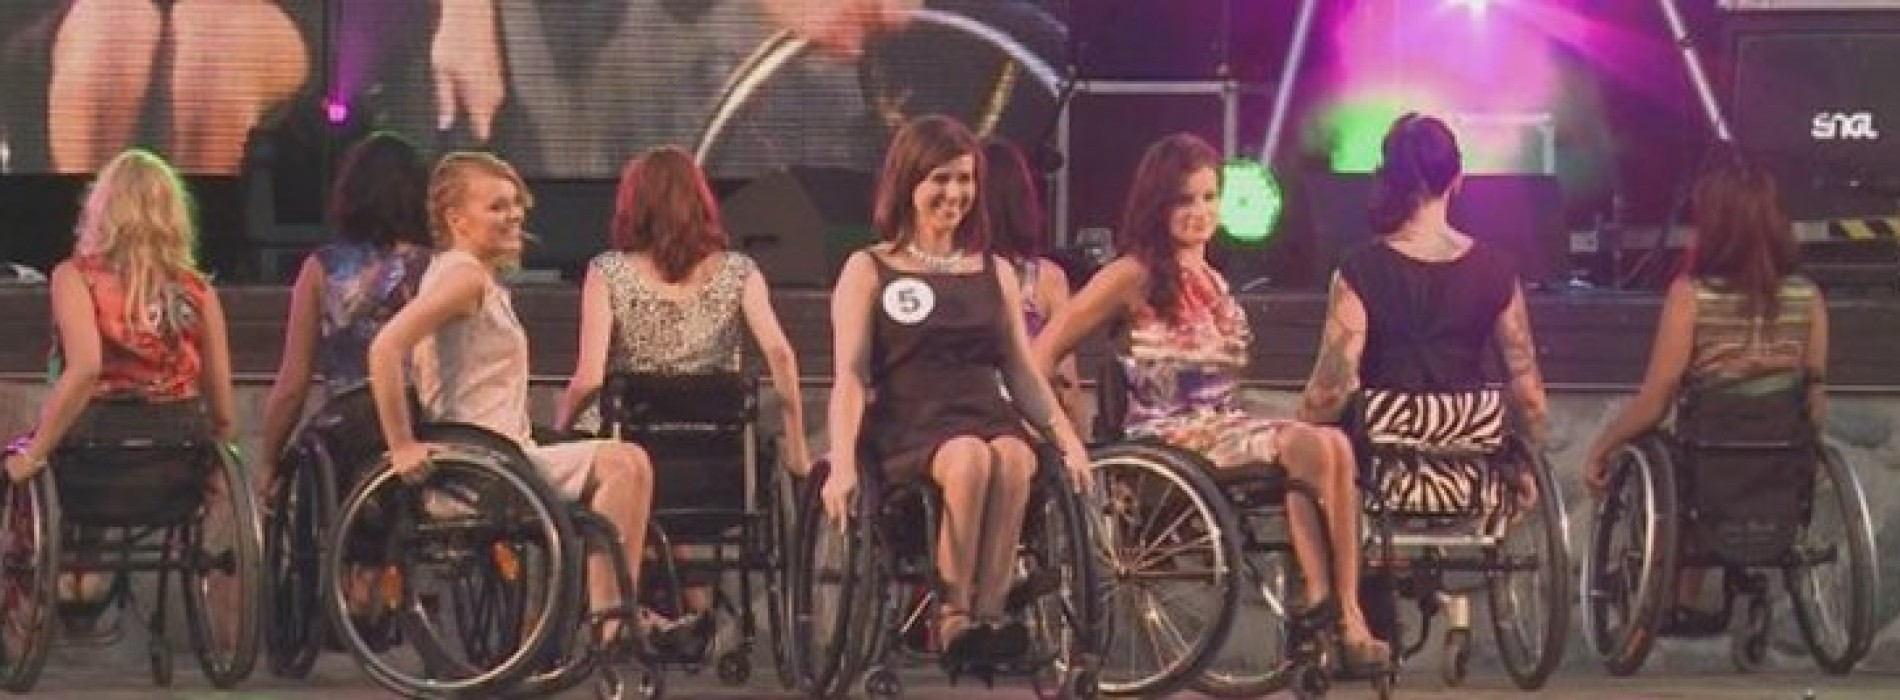 Disabled beauty pageants: why don't we hear about them?